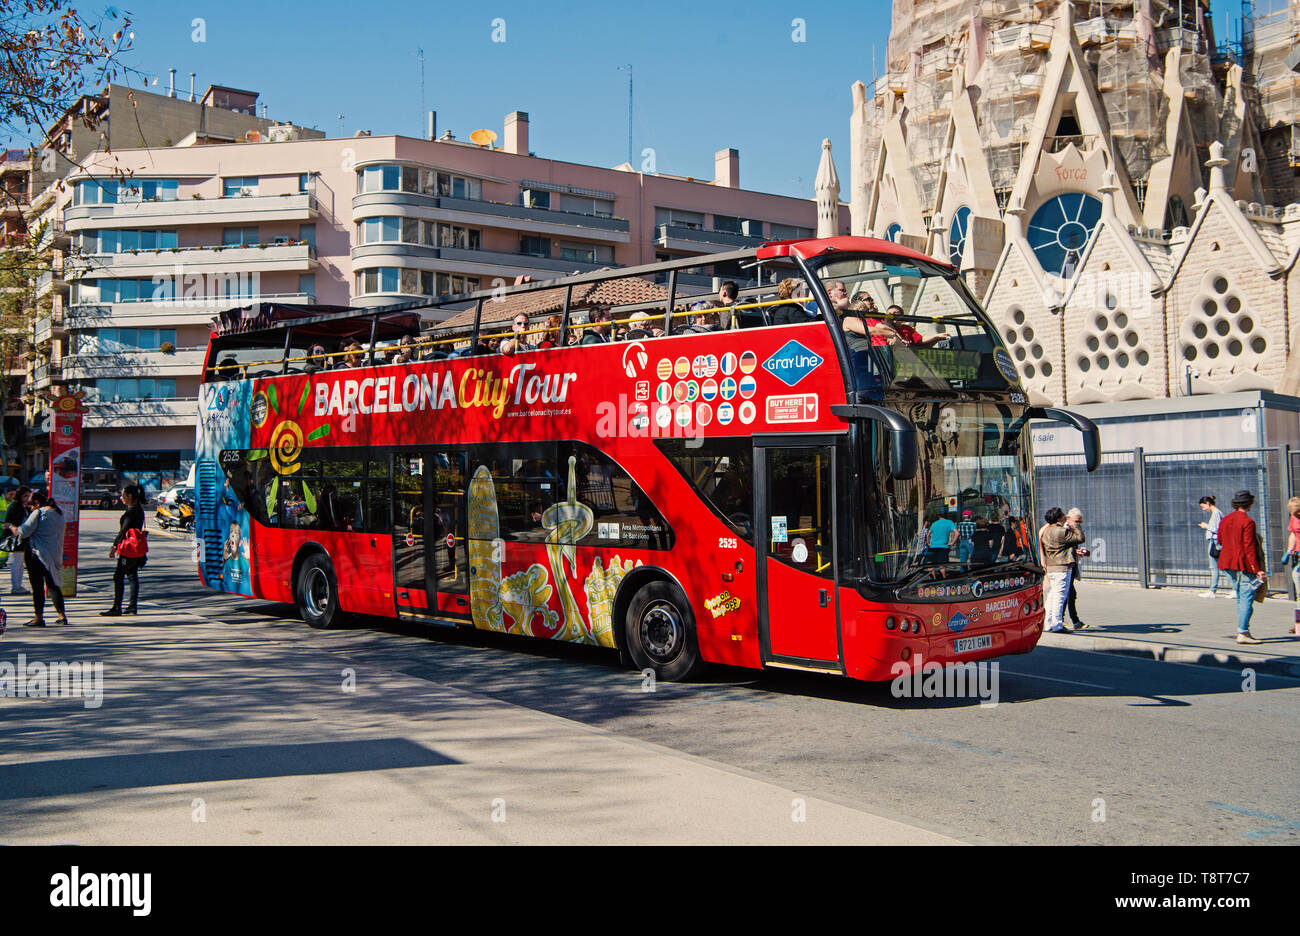 Barcelona, Spain - March 30, 2016: Barcelona city tour bus on street. Sightseeing and travelling. Transport for trip around Barcelona. Summer vacation in Barcelona. - Stock Image